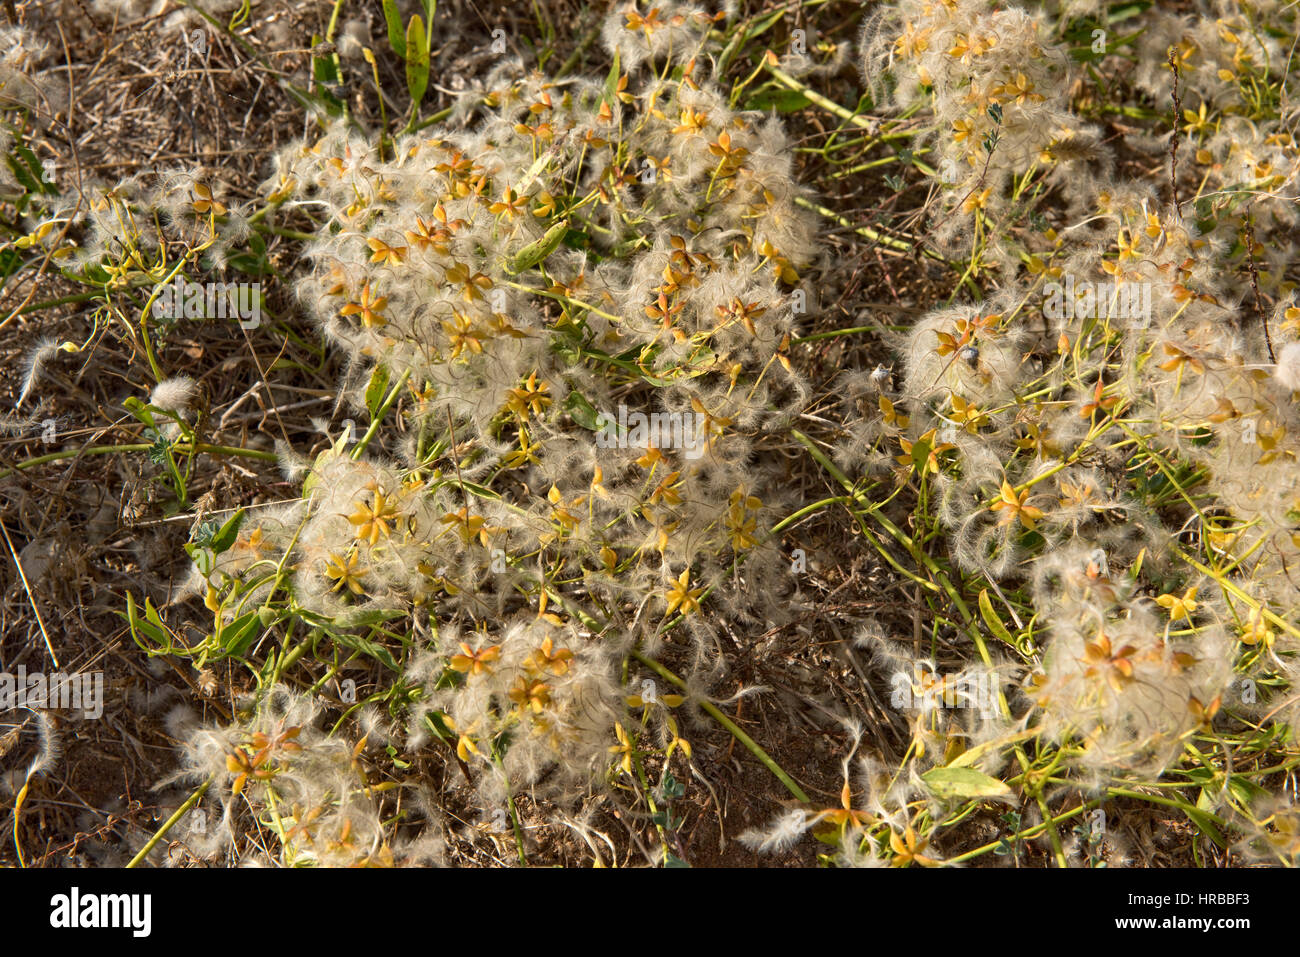 Traveller's joy, Clematis vitalba, with hairy seedheads on low growing bushes on the Mediterranean coast - Stock Image